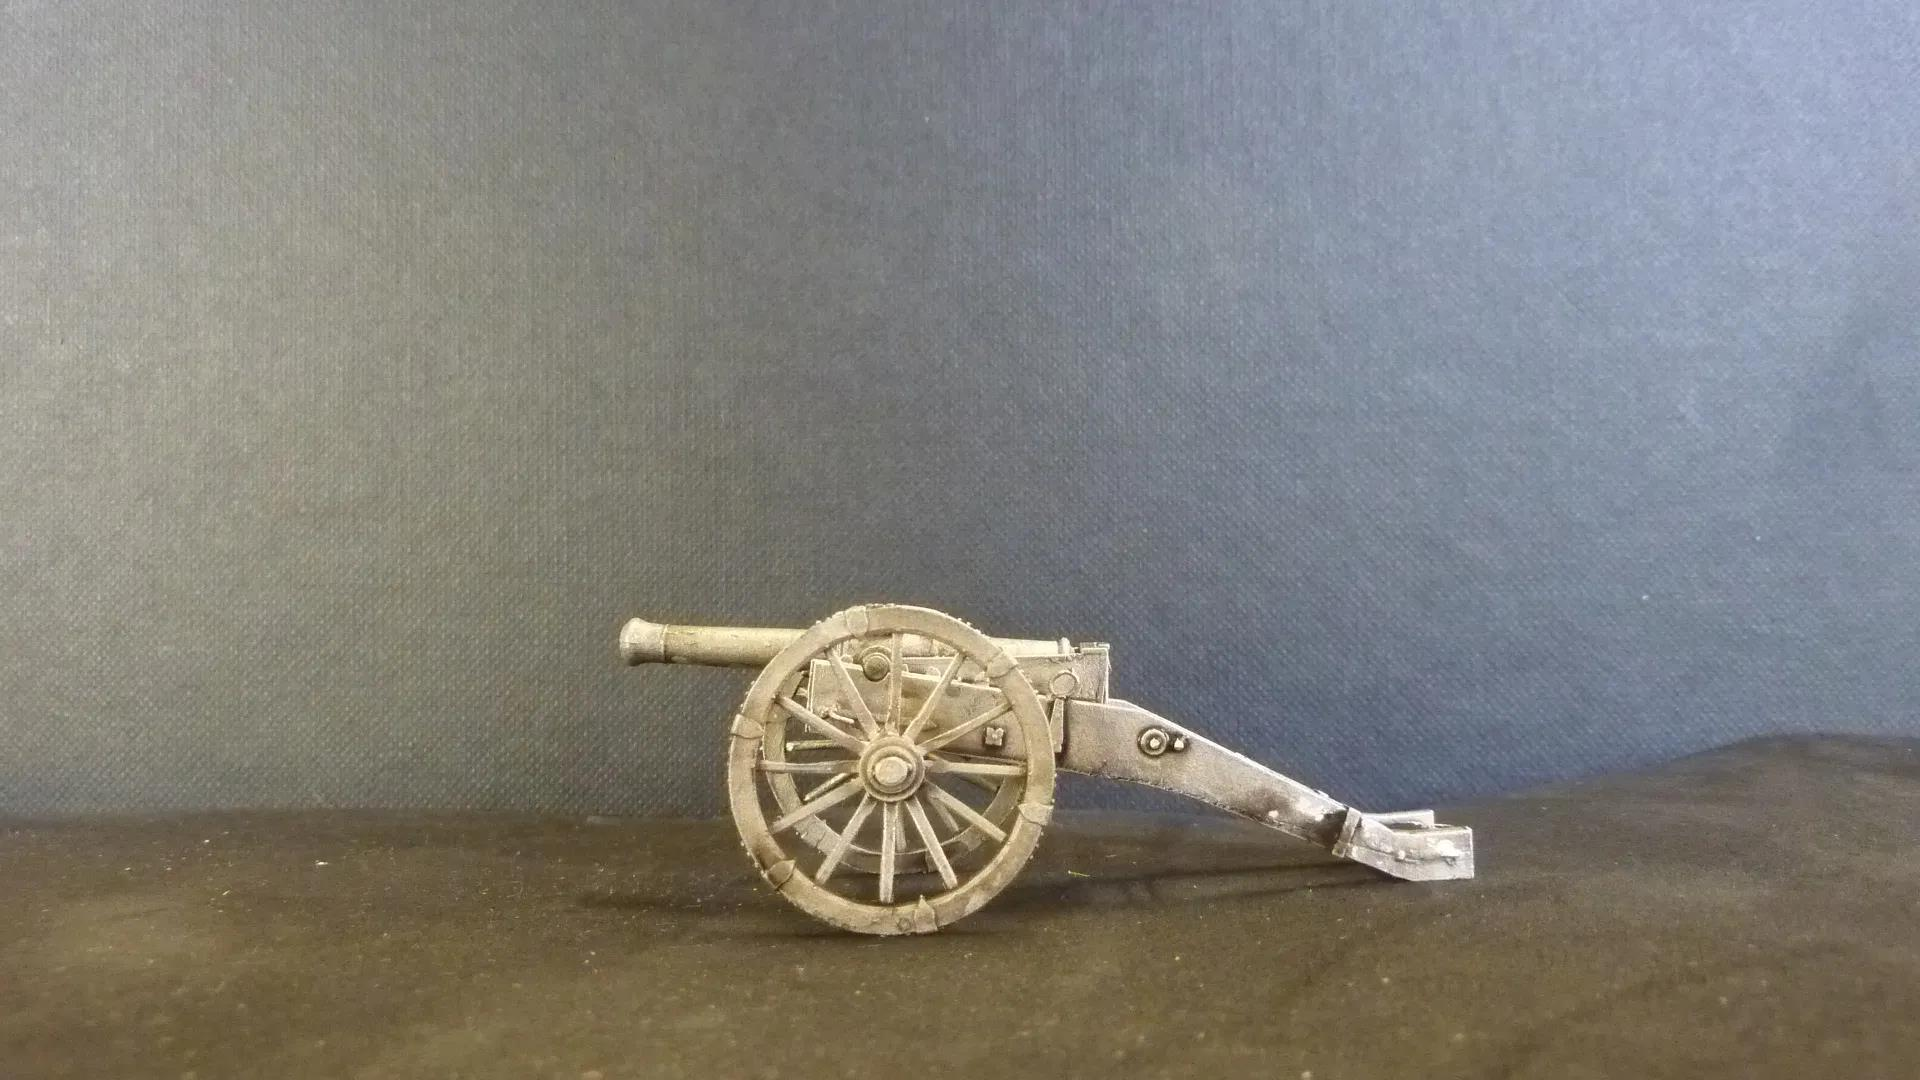 Saxon Rapid Fire Cannon (3/6pdr)